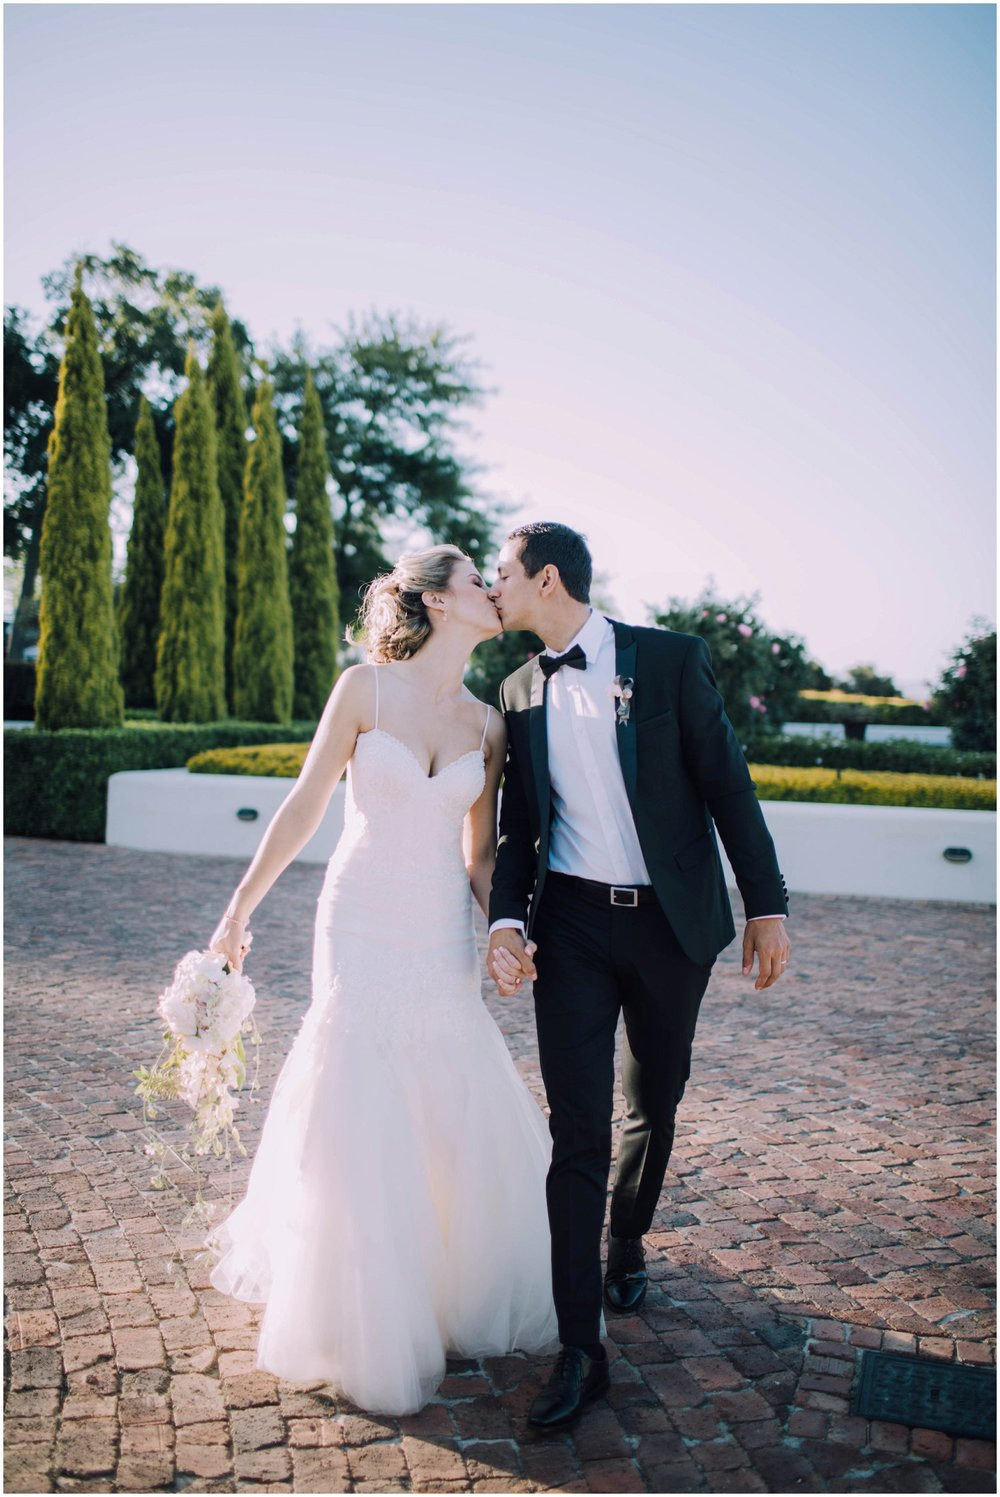 Top Artistic Creative Documentary Wedding Photographer Cape Town South Africa Rue Kruger_0146.jpg